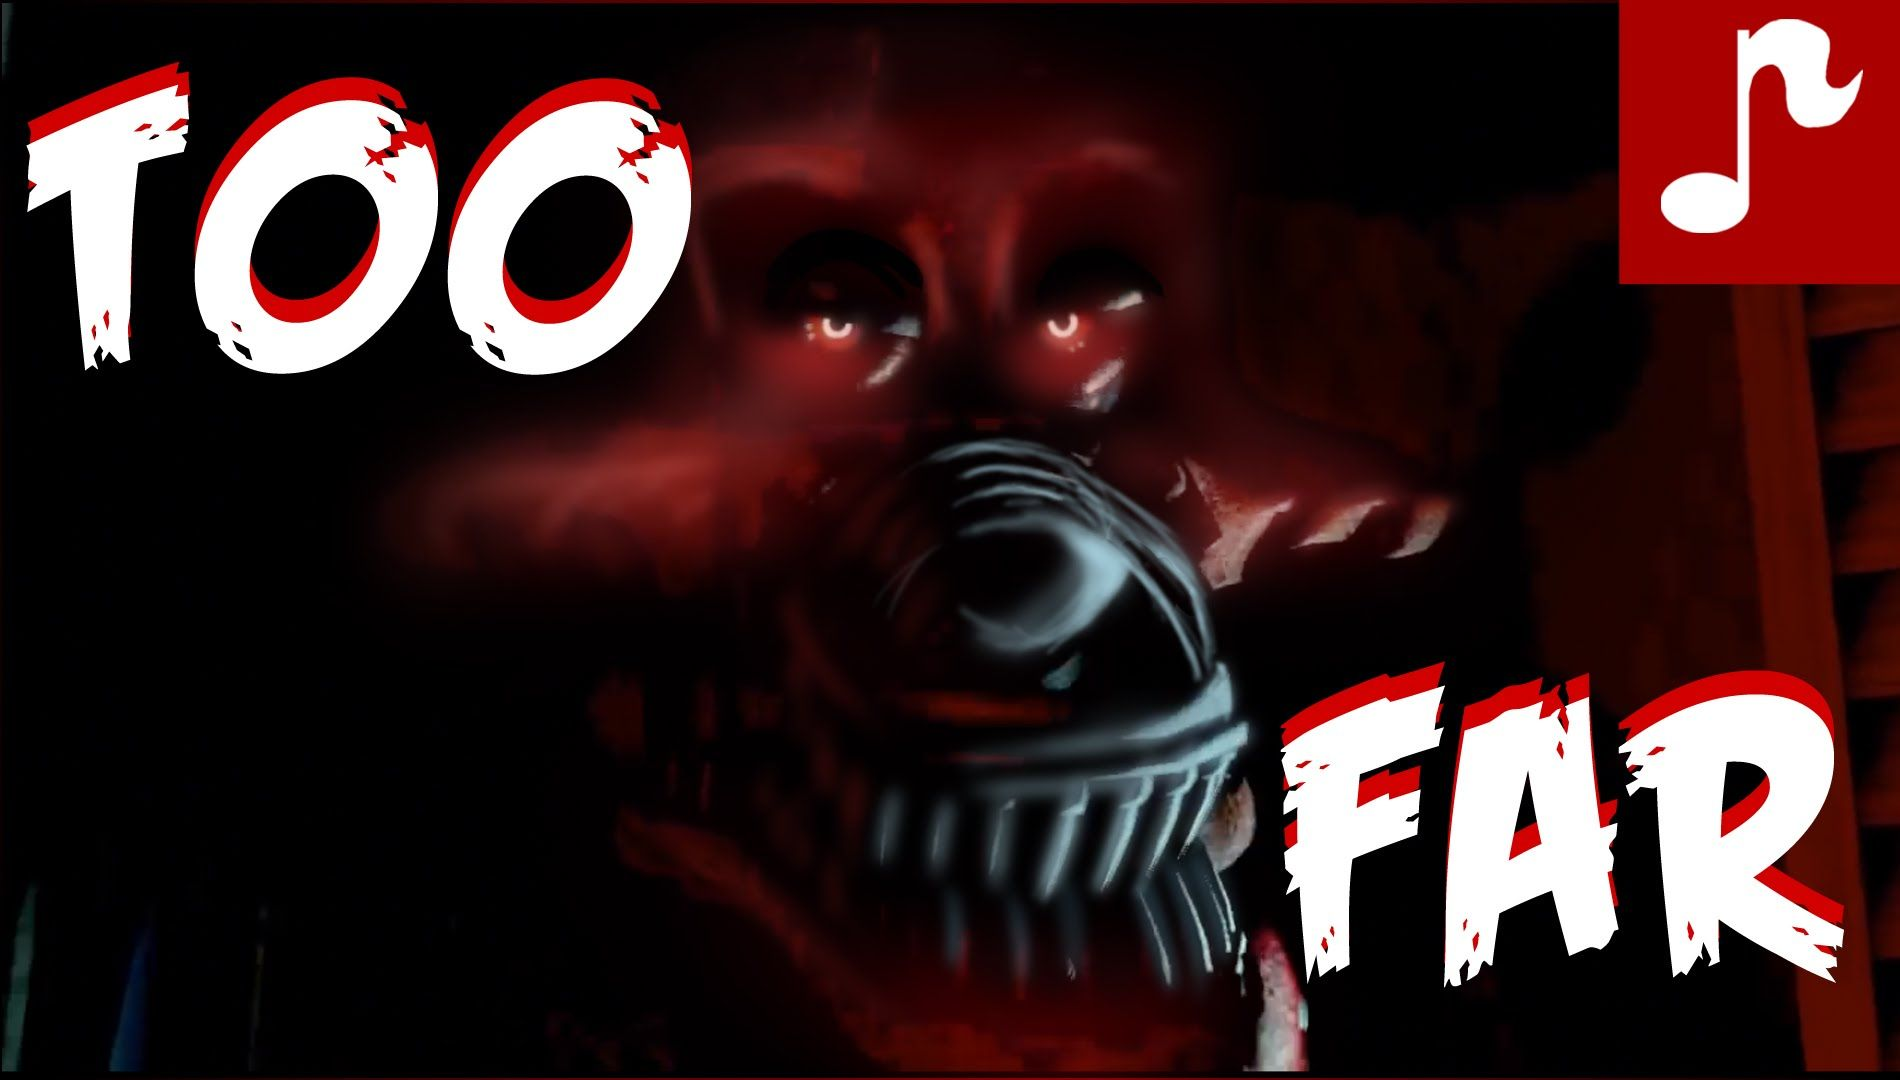 FIVE NIGHTS AT FREDDY'S WORLD THE MUSICAL - FNAF Animation Parody Song